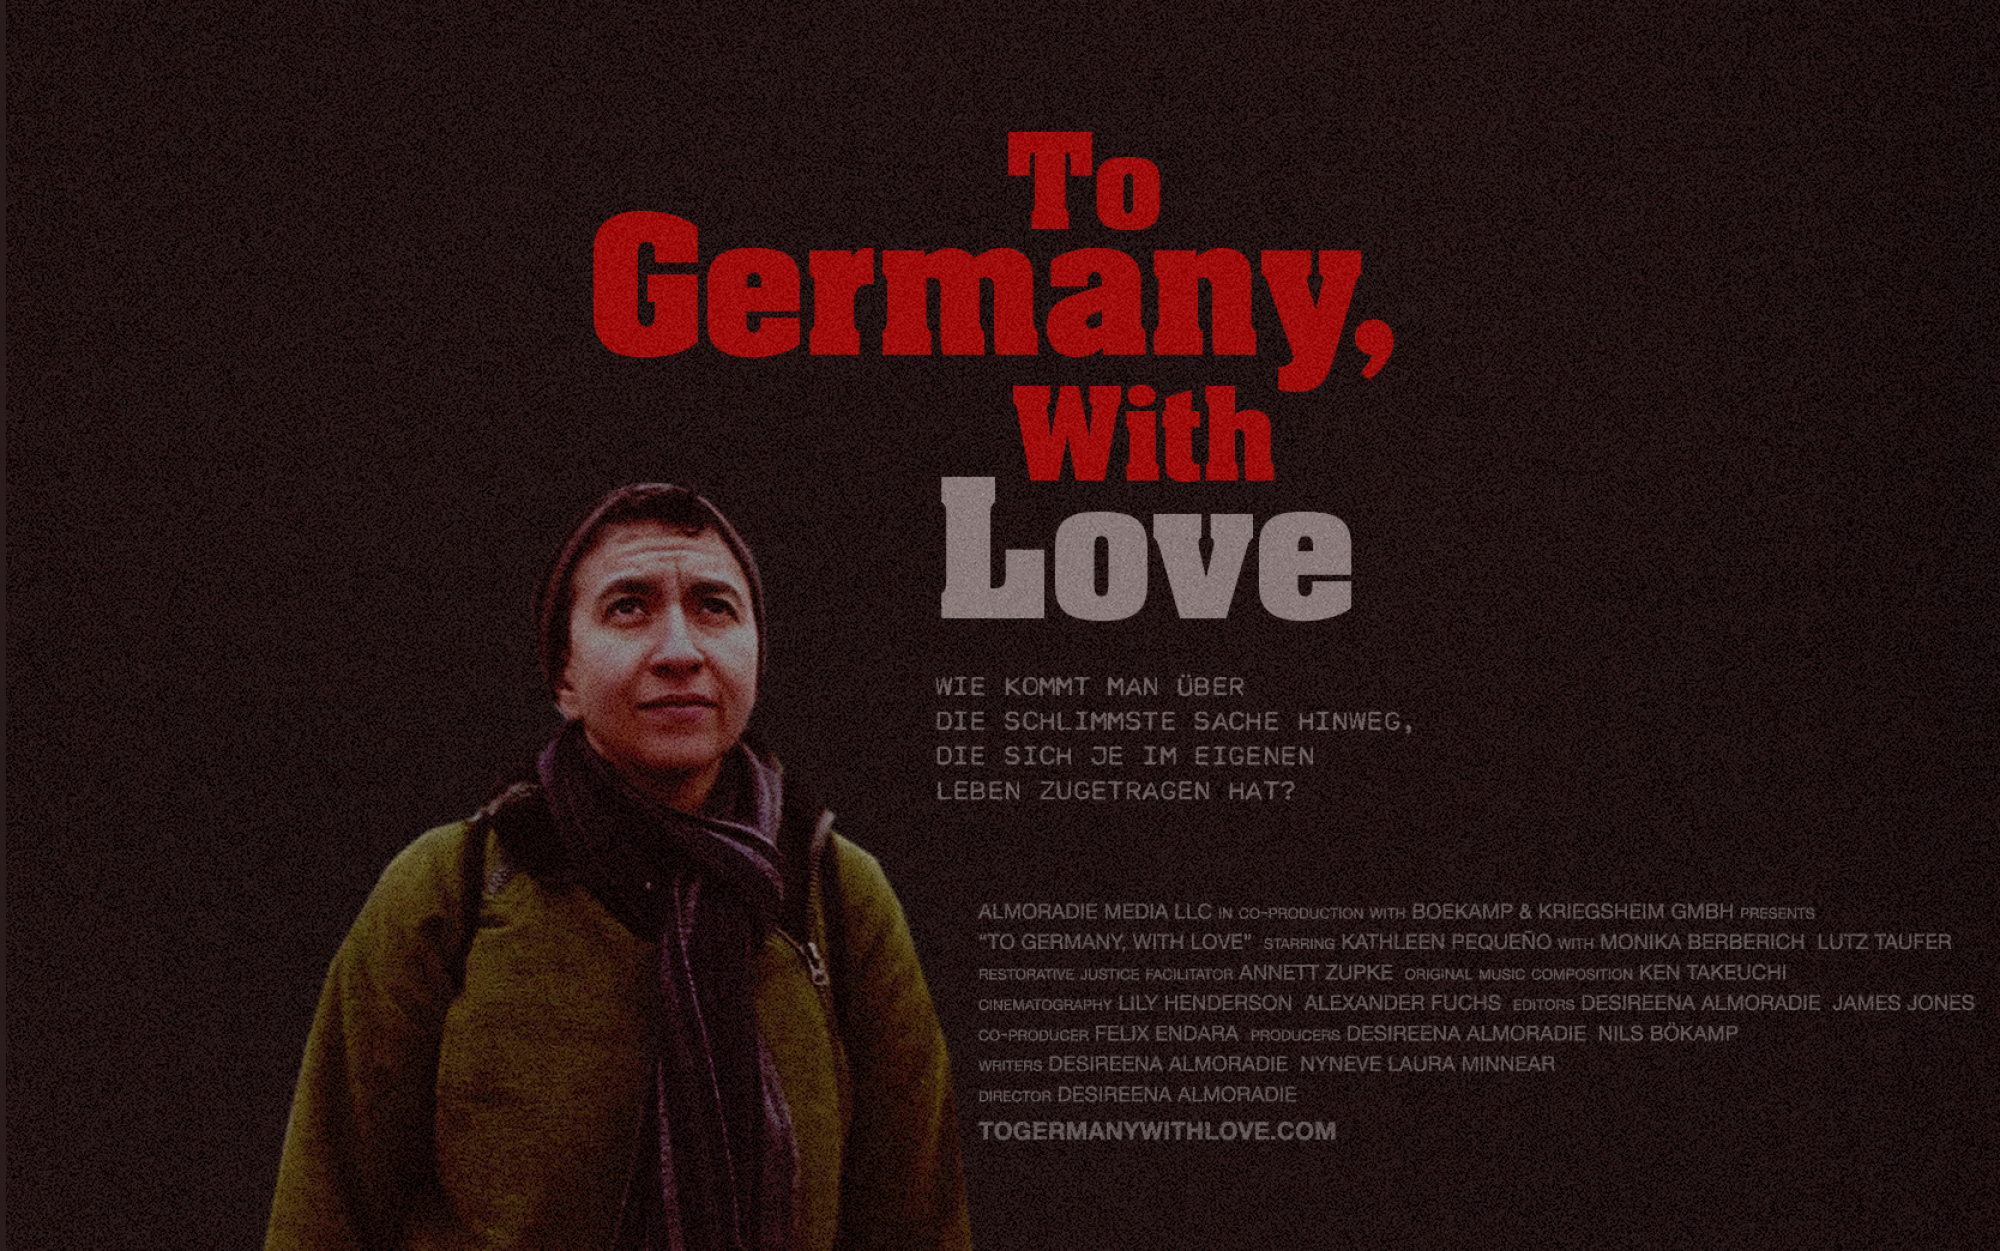 The Worst Thing (To Germany, With Love)